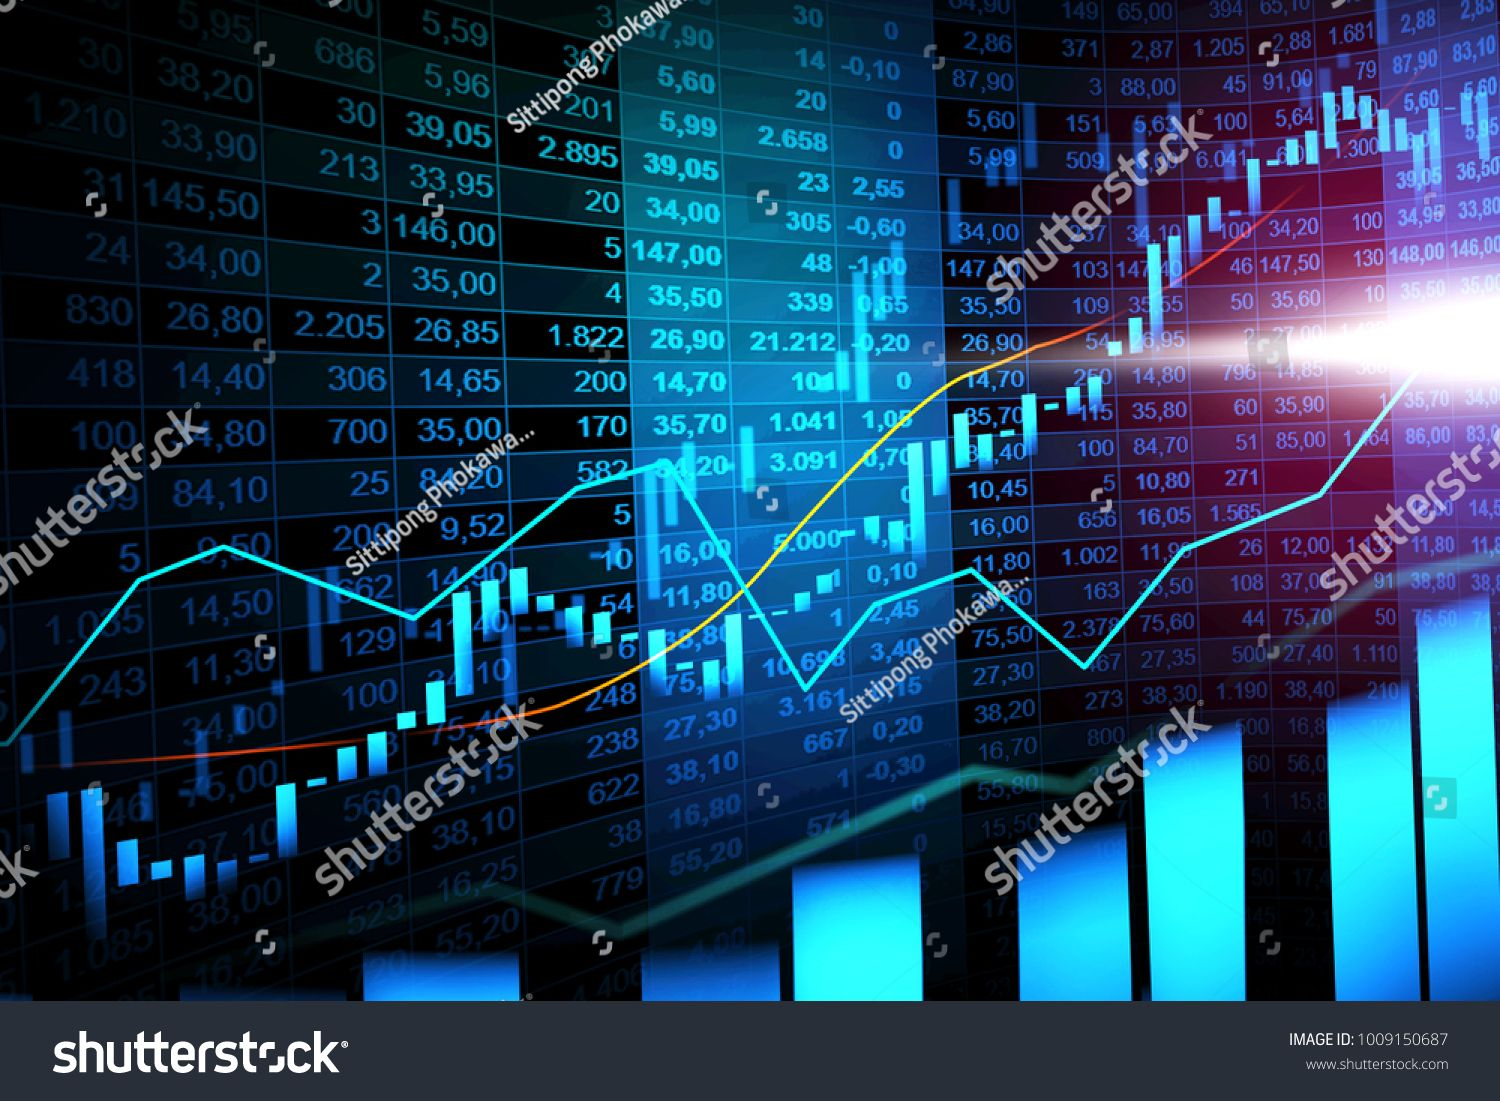 Stock Market Or Forex Trading Graph With Candlestick Chart Suitable For Financial Investment Concept Economic Tr Stock Market Candlestick Chart Online Trading